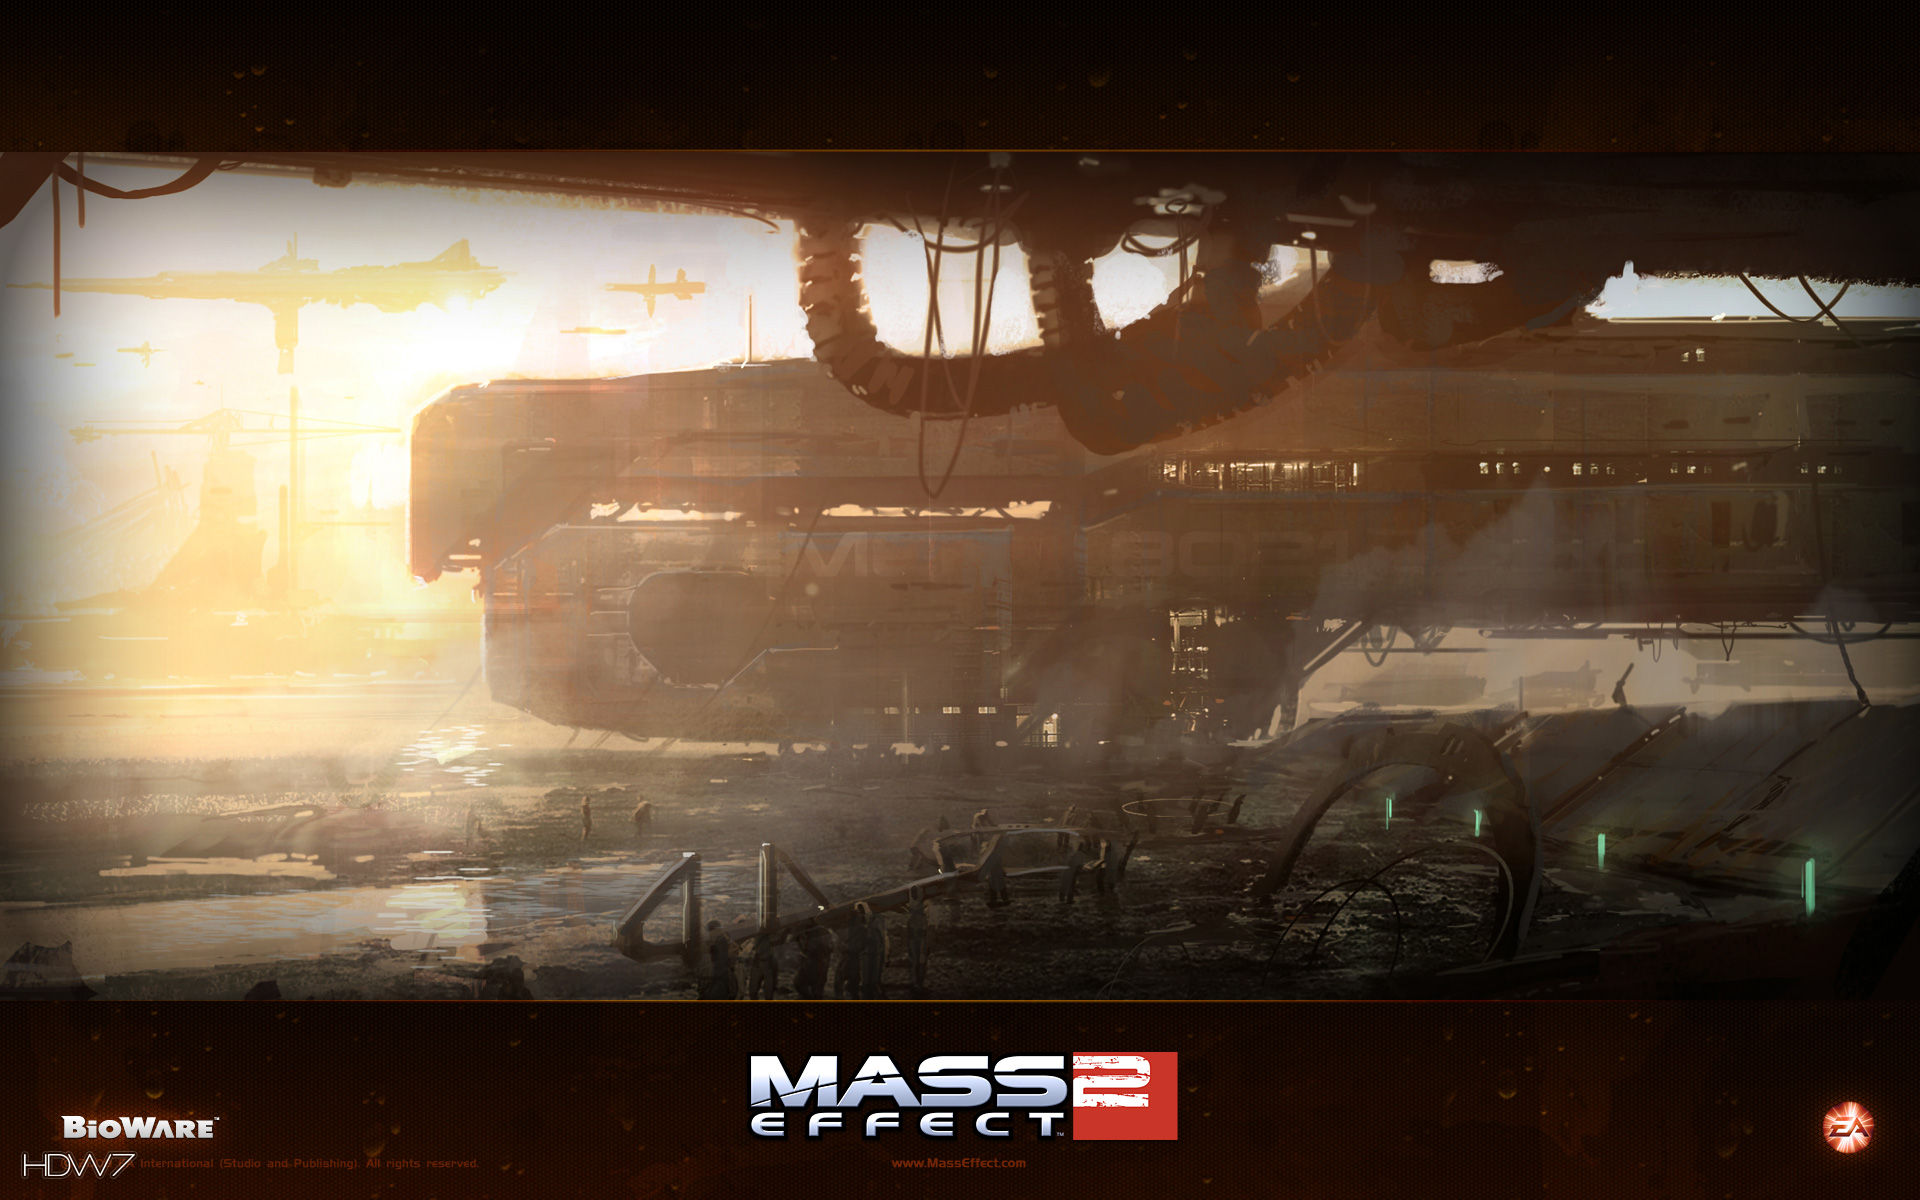 mass effect 2 suicide mission widescreen wallpaper